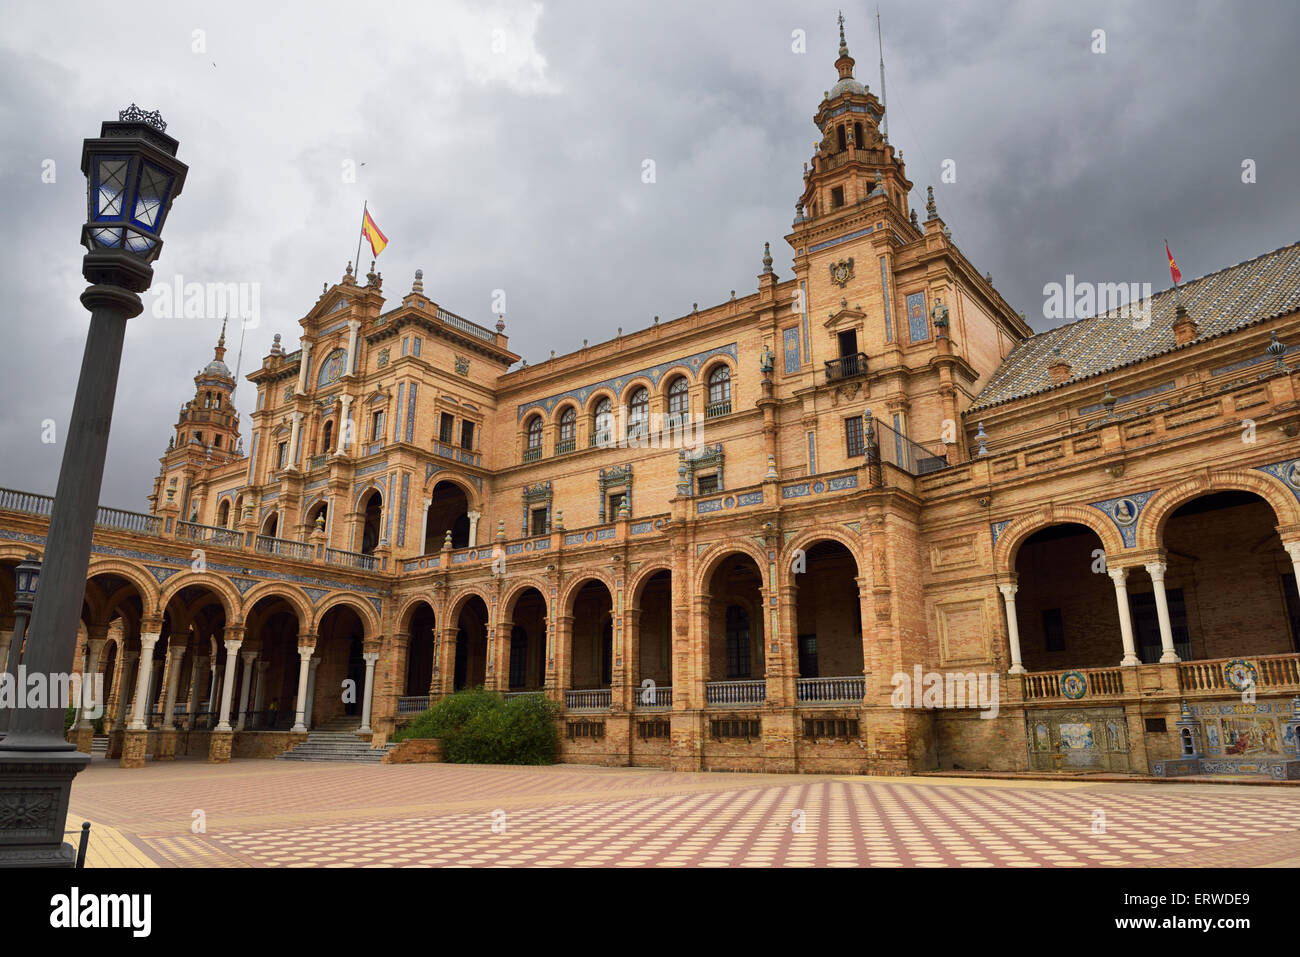 Empty square and dark clouds at the Main Building of Plaza de Espana Seville Spain - Stock Image